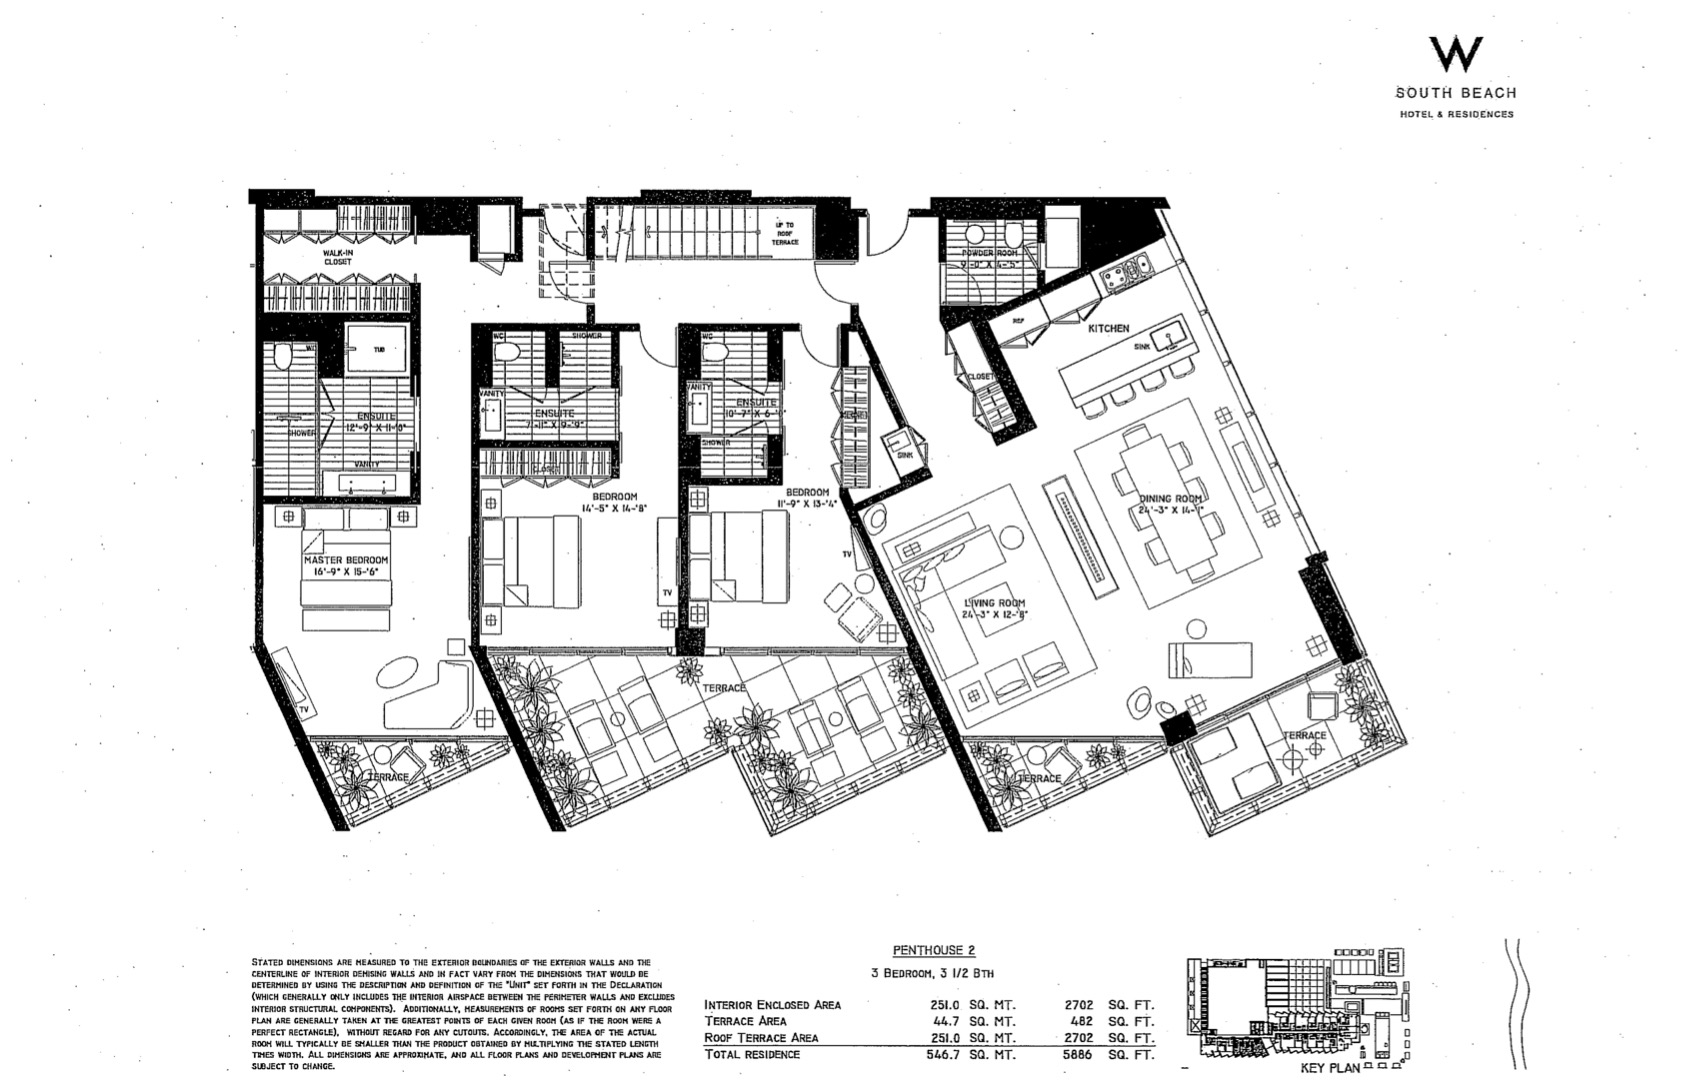 Floor plan image W South Beach Penthouse 2 - 3/3/1  - 5886 sqft image